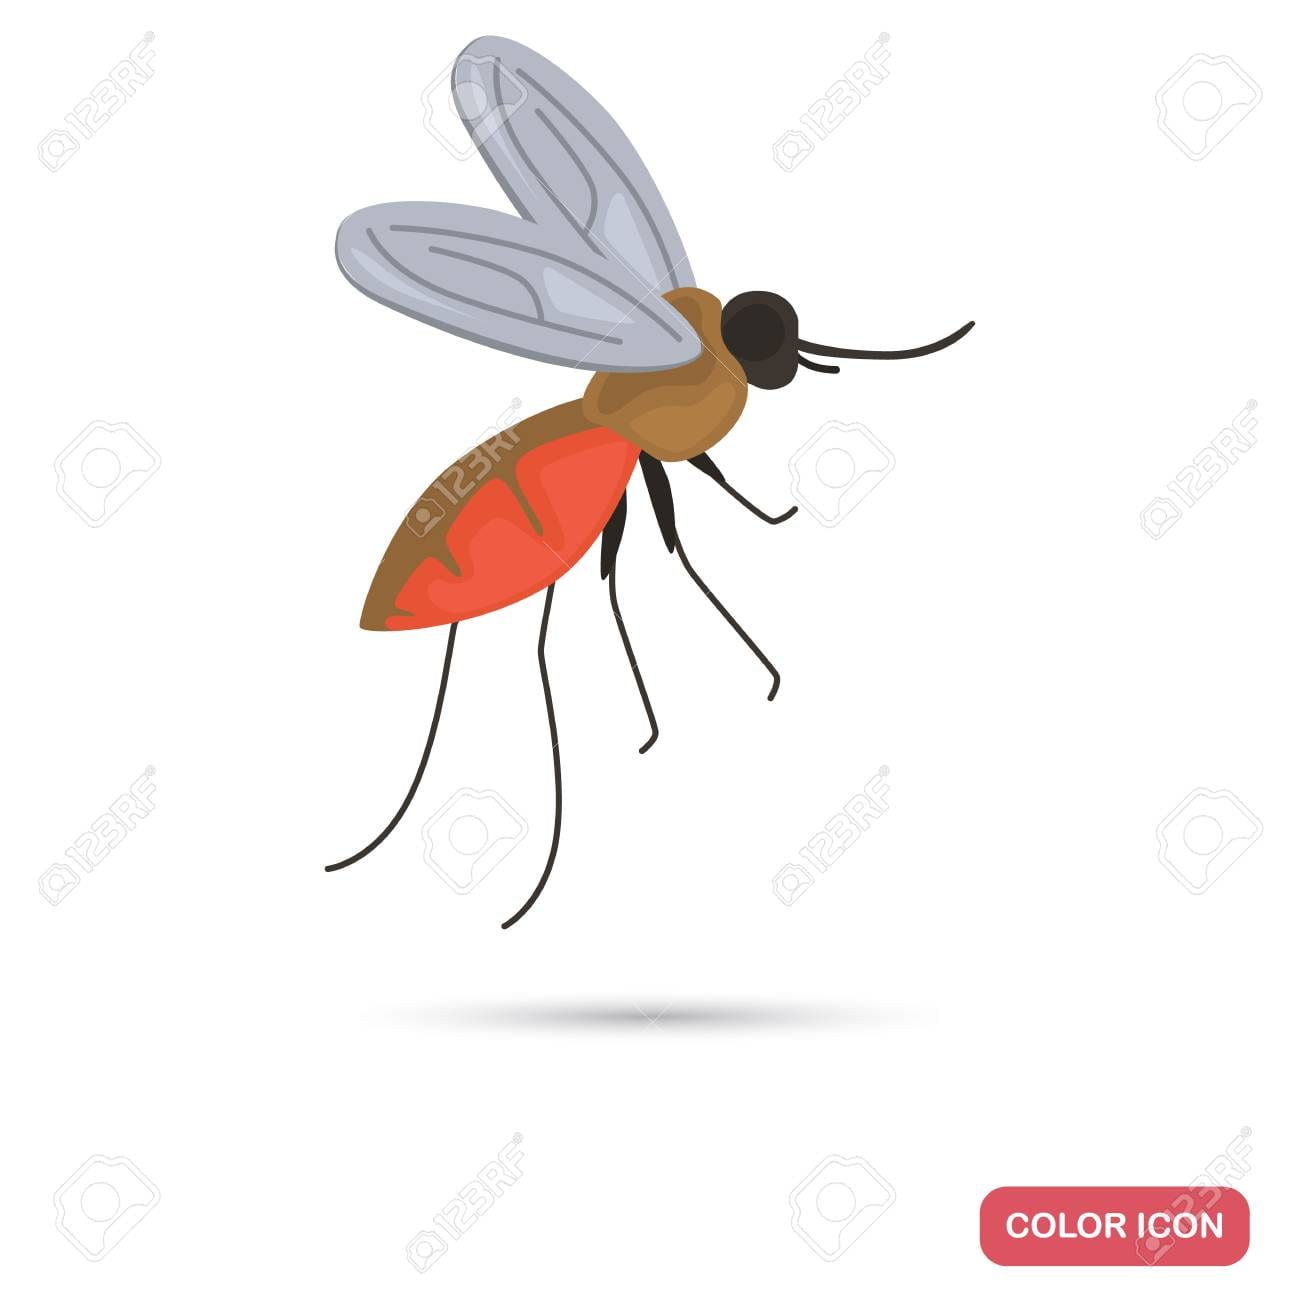 Mosquito In Flight Color Flat Icon Isolated On Plain Background